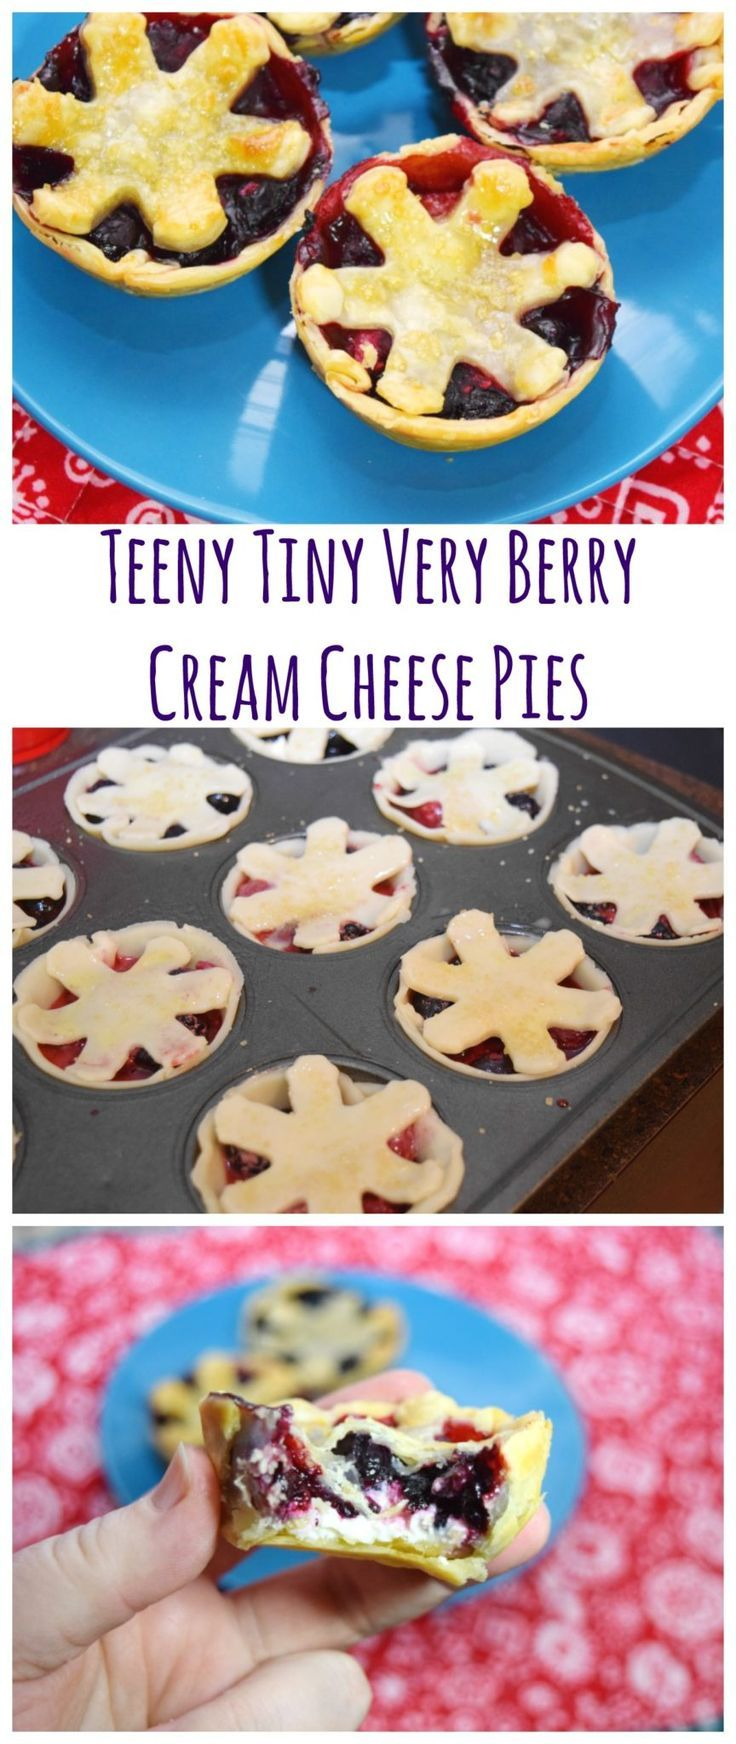 Need the perfect sweet treat? Make these teeny tiny very berry cream cheese pies! Full of raspberry, blueberry, and strawberry! So perfect for valentine's day or any day! #pie #recipe #dessert